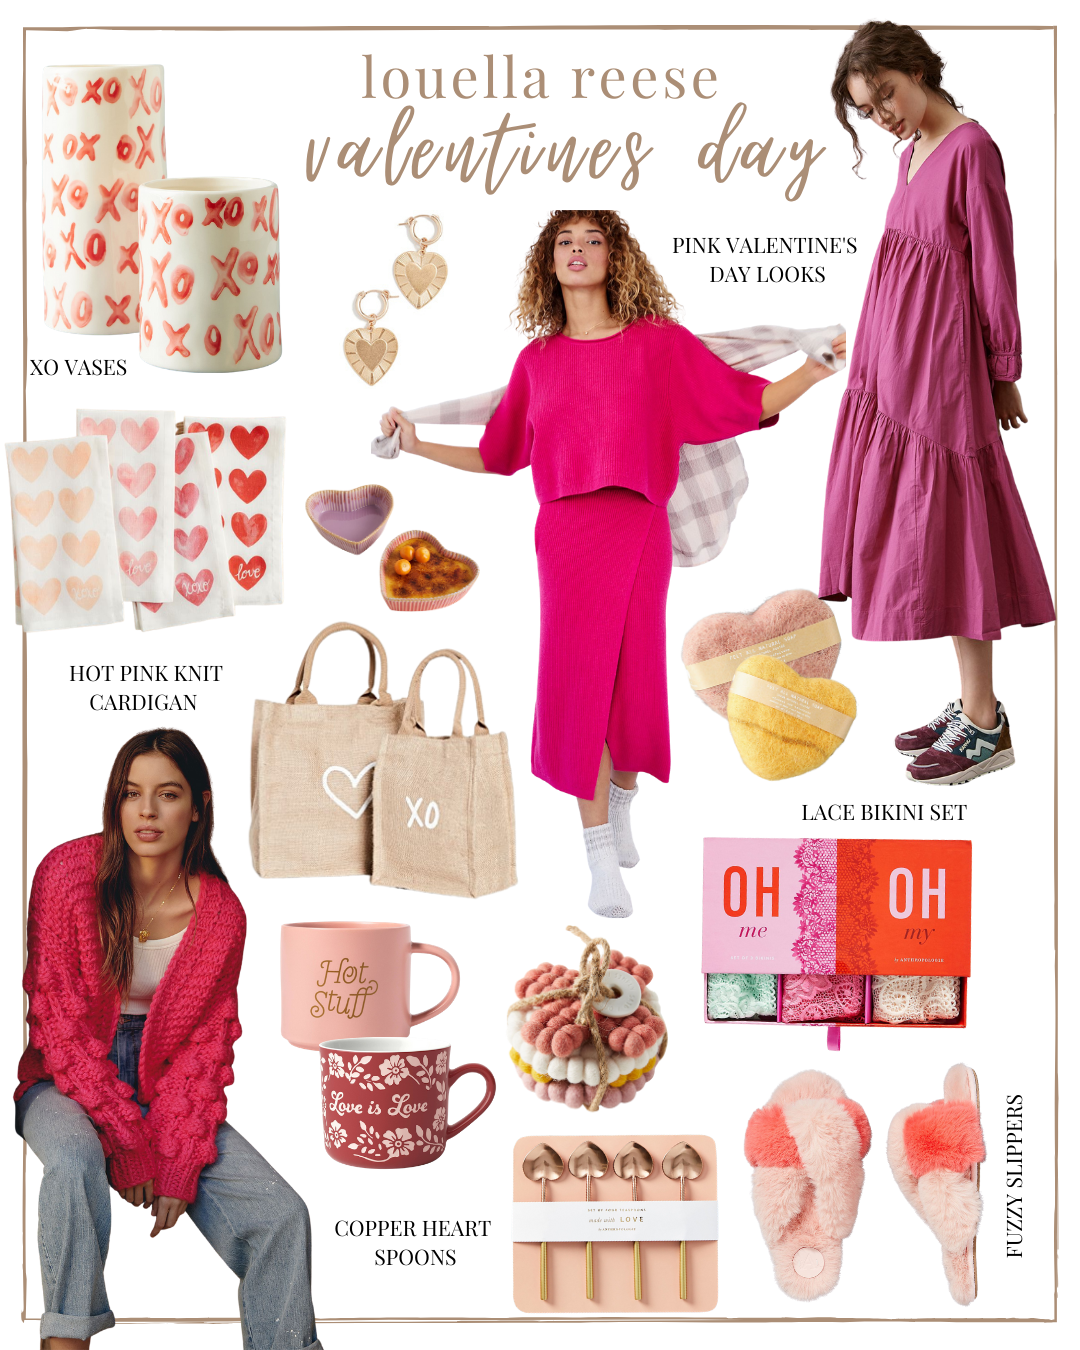 Valentines Day Gift Guide for Her | pink gifts | lifestyle | Louella Reese